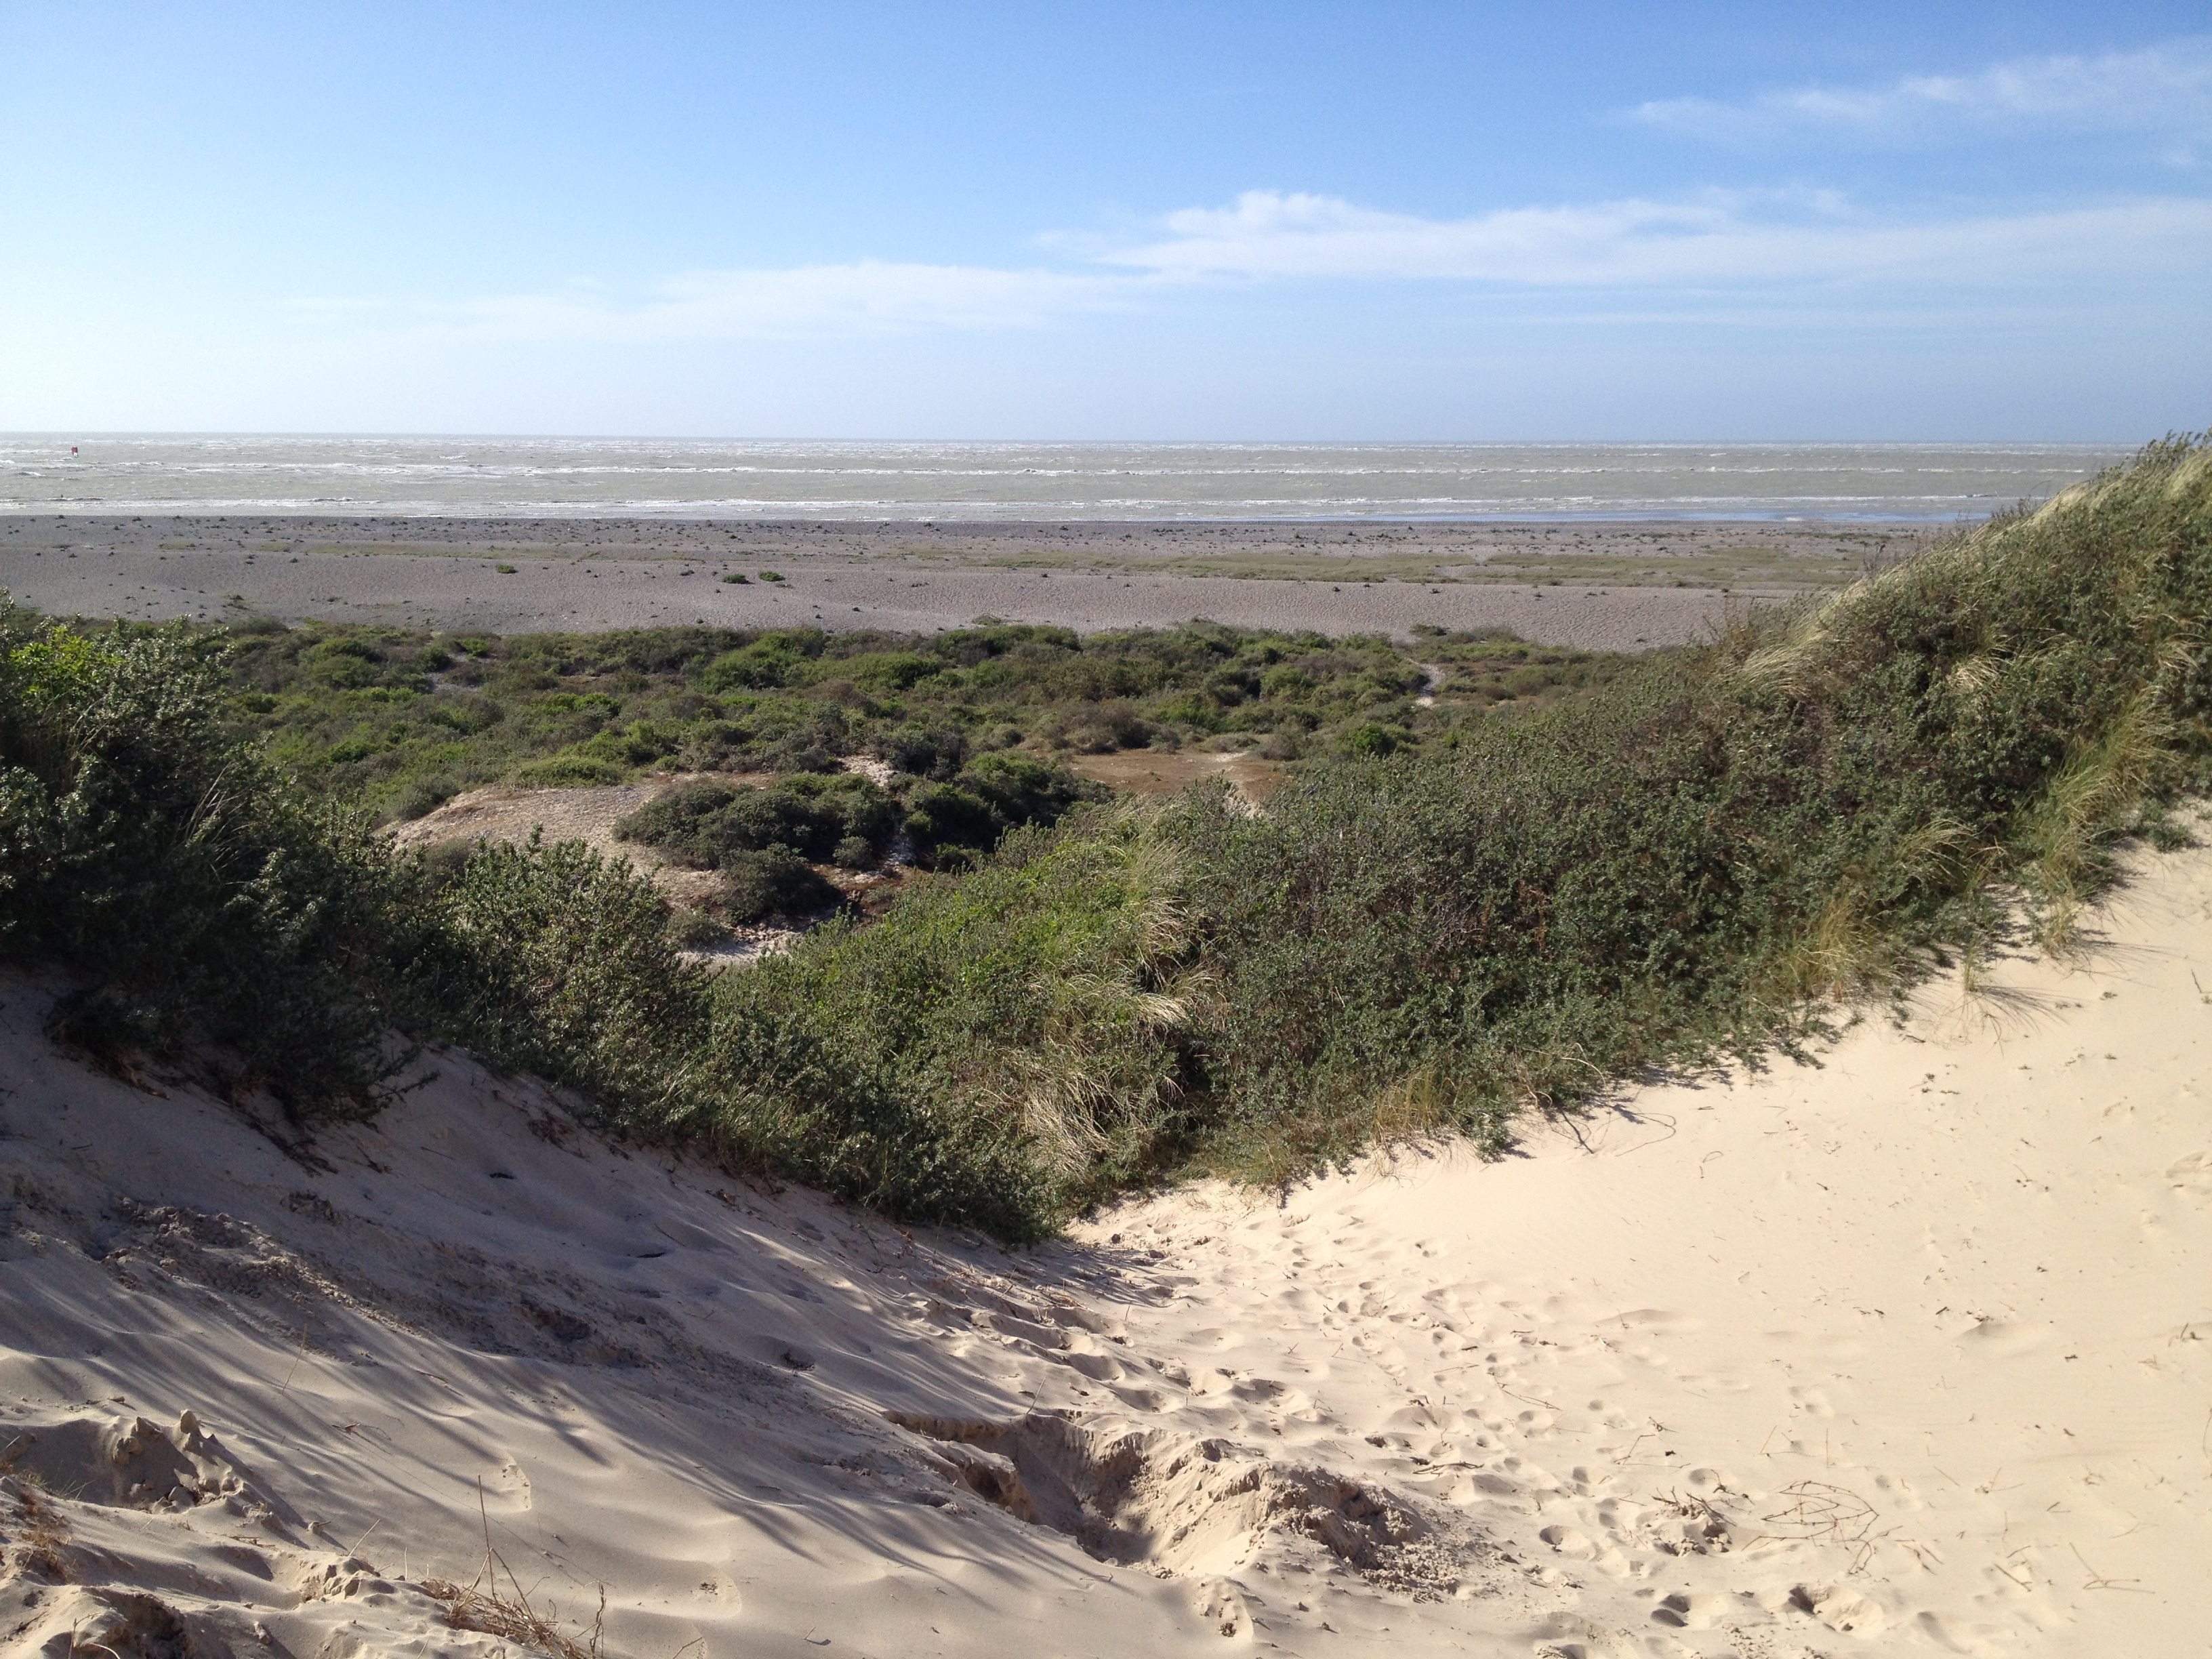 A view of the channel from the top of the dunes.